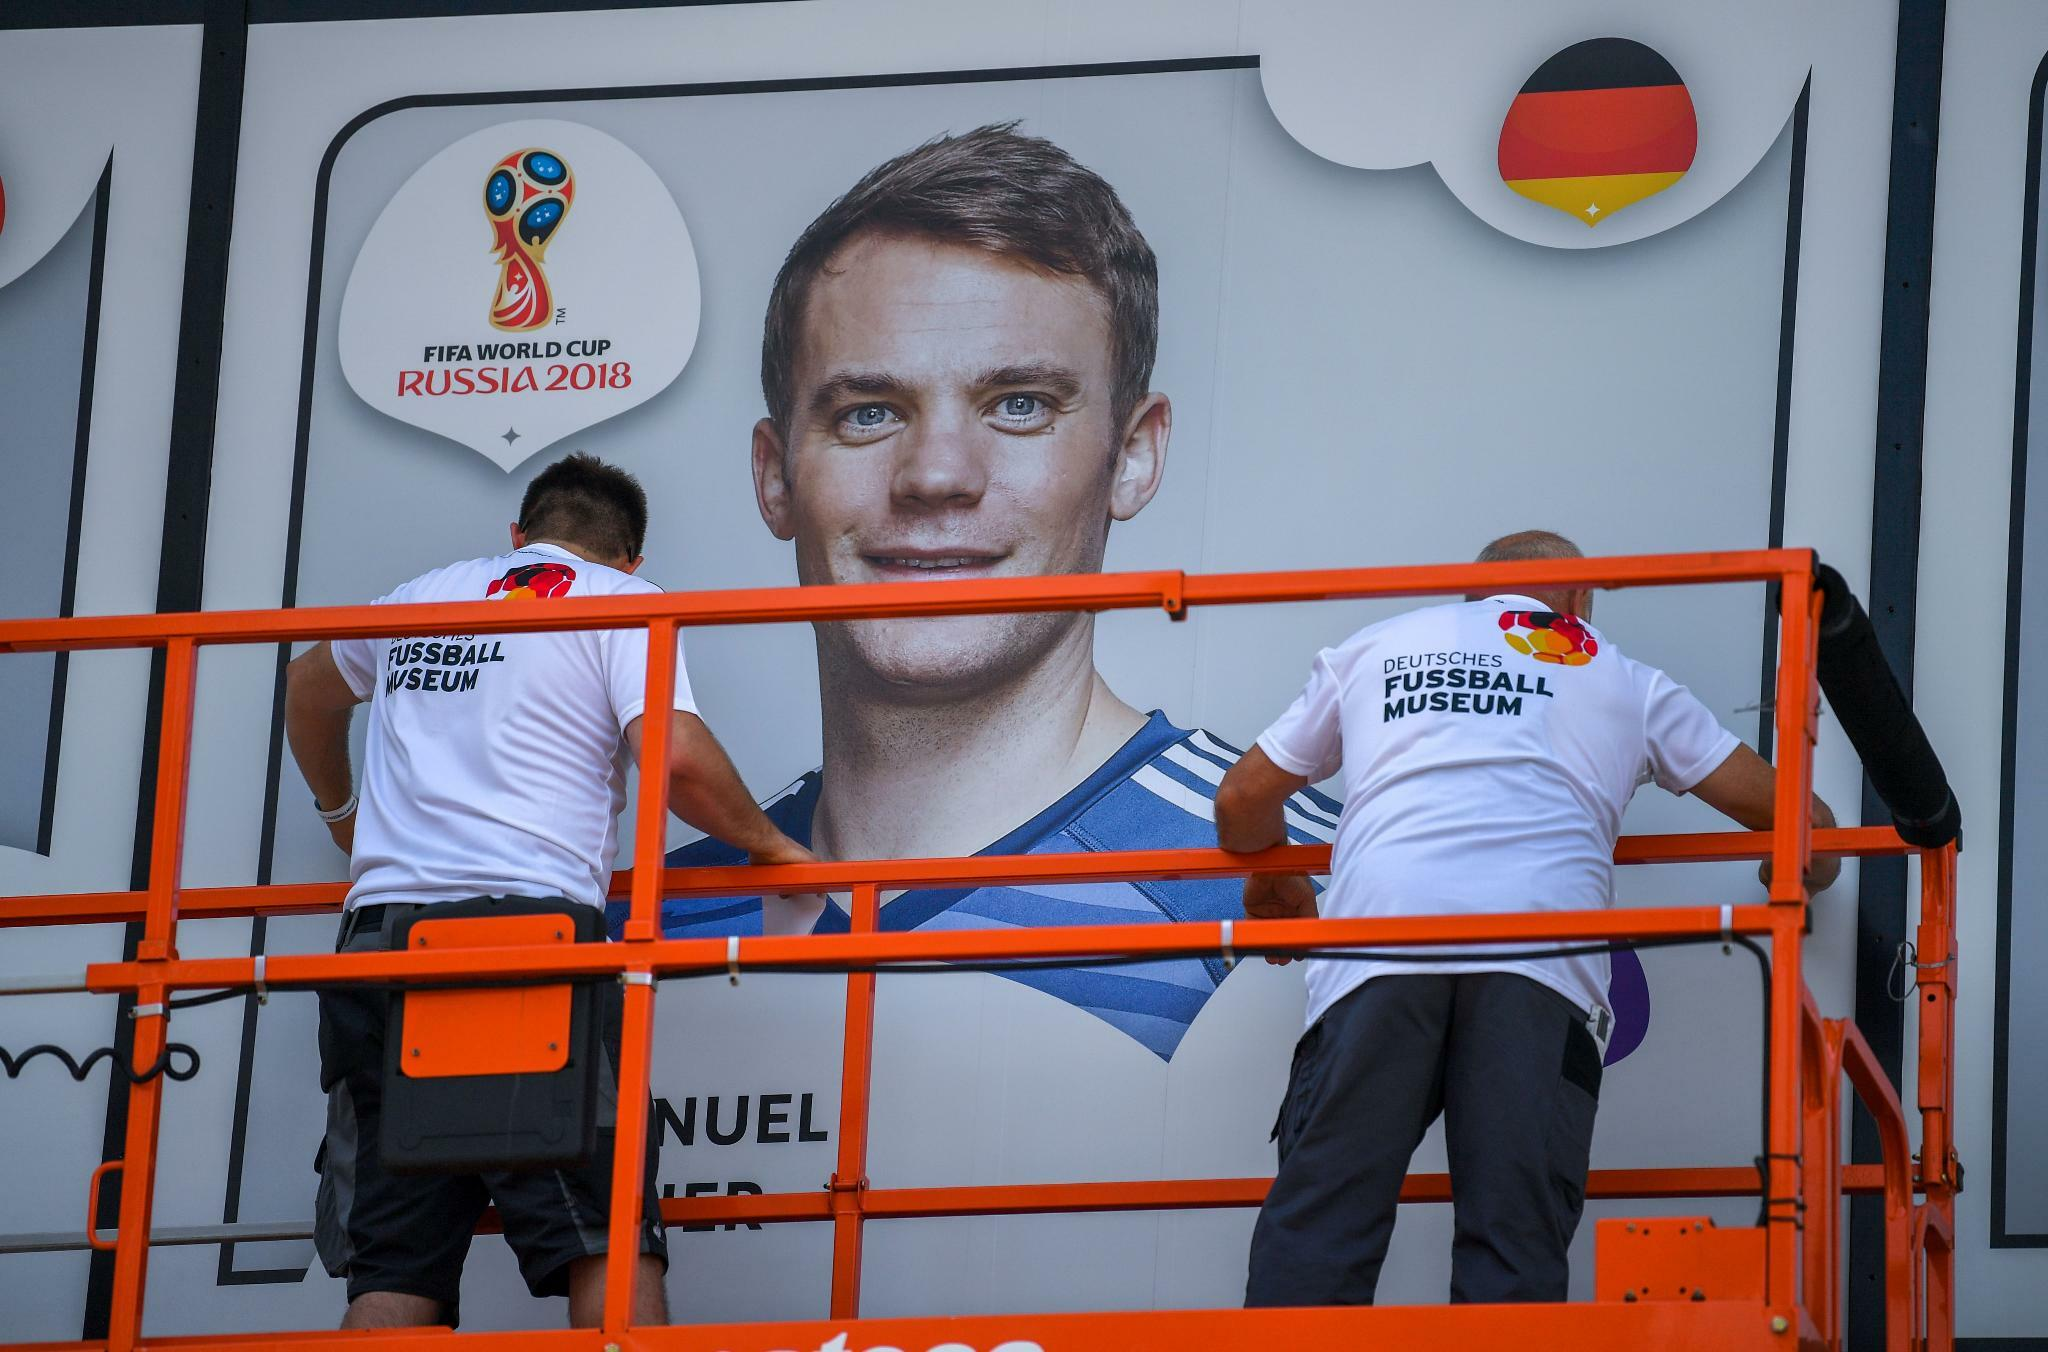 dfb pokalfinale in berlin fc bayern best tigt manuel neuer im kader sport tagesspiegel. Black Bedroom Furniture Sets. Home Design Ideas